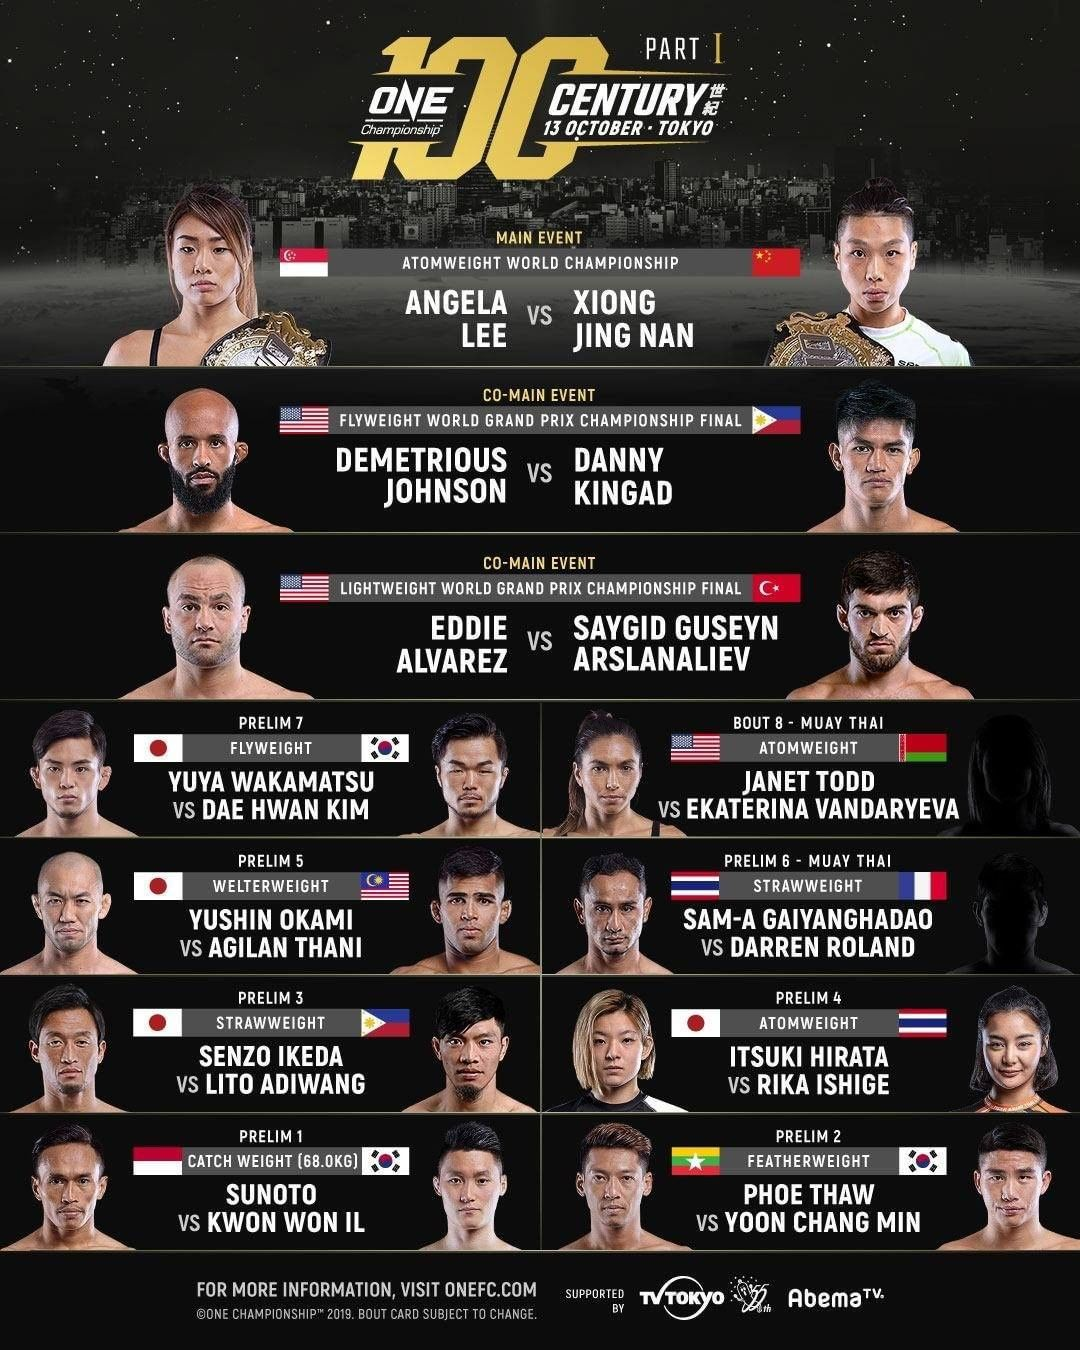 ONE Championship 'Century' doubleheader announced for Oct. 13 in Tokyo